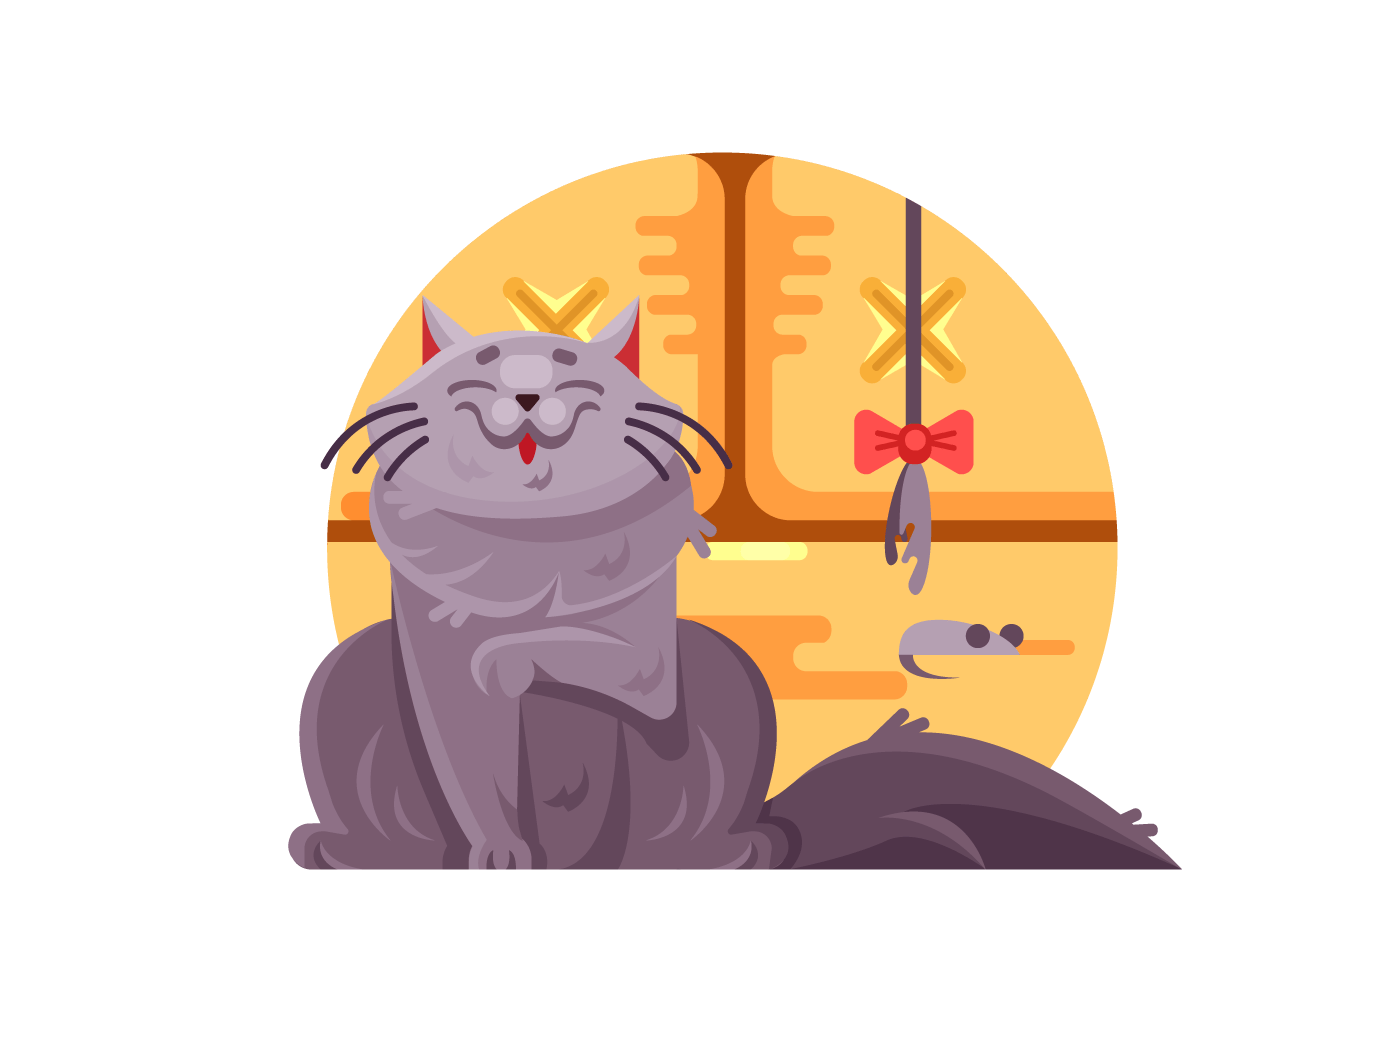 Cute cat and little mouse illustration